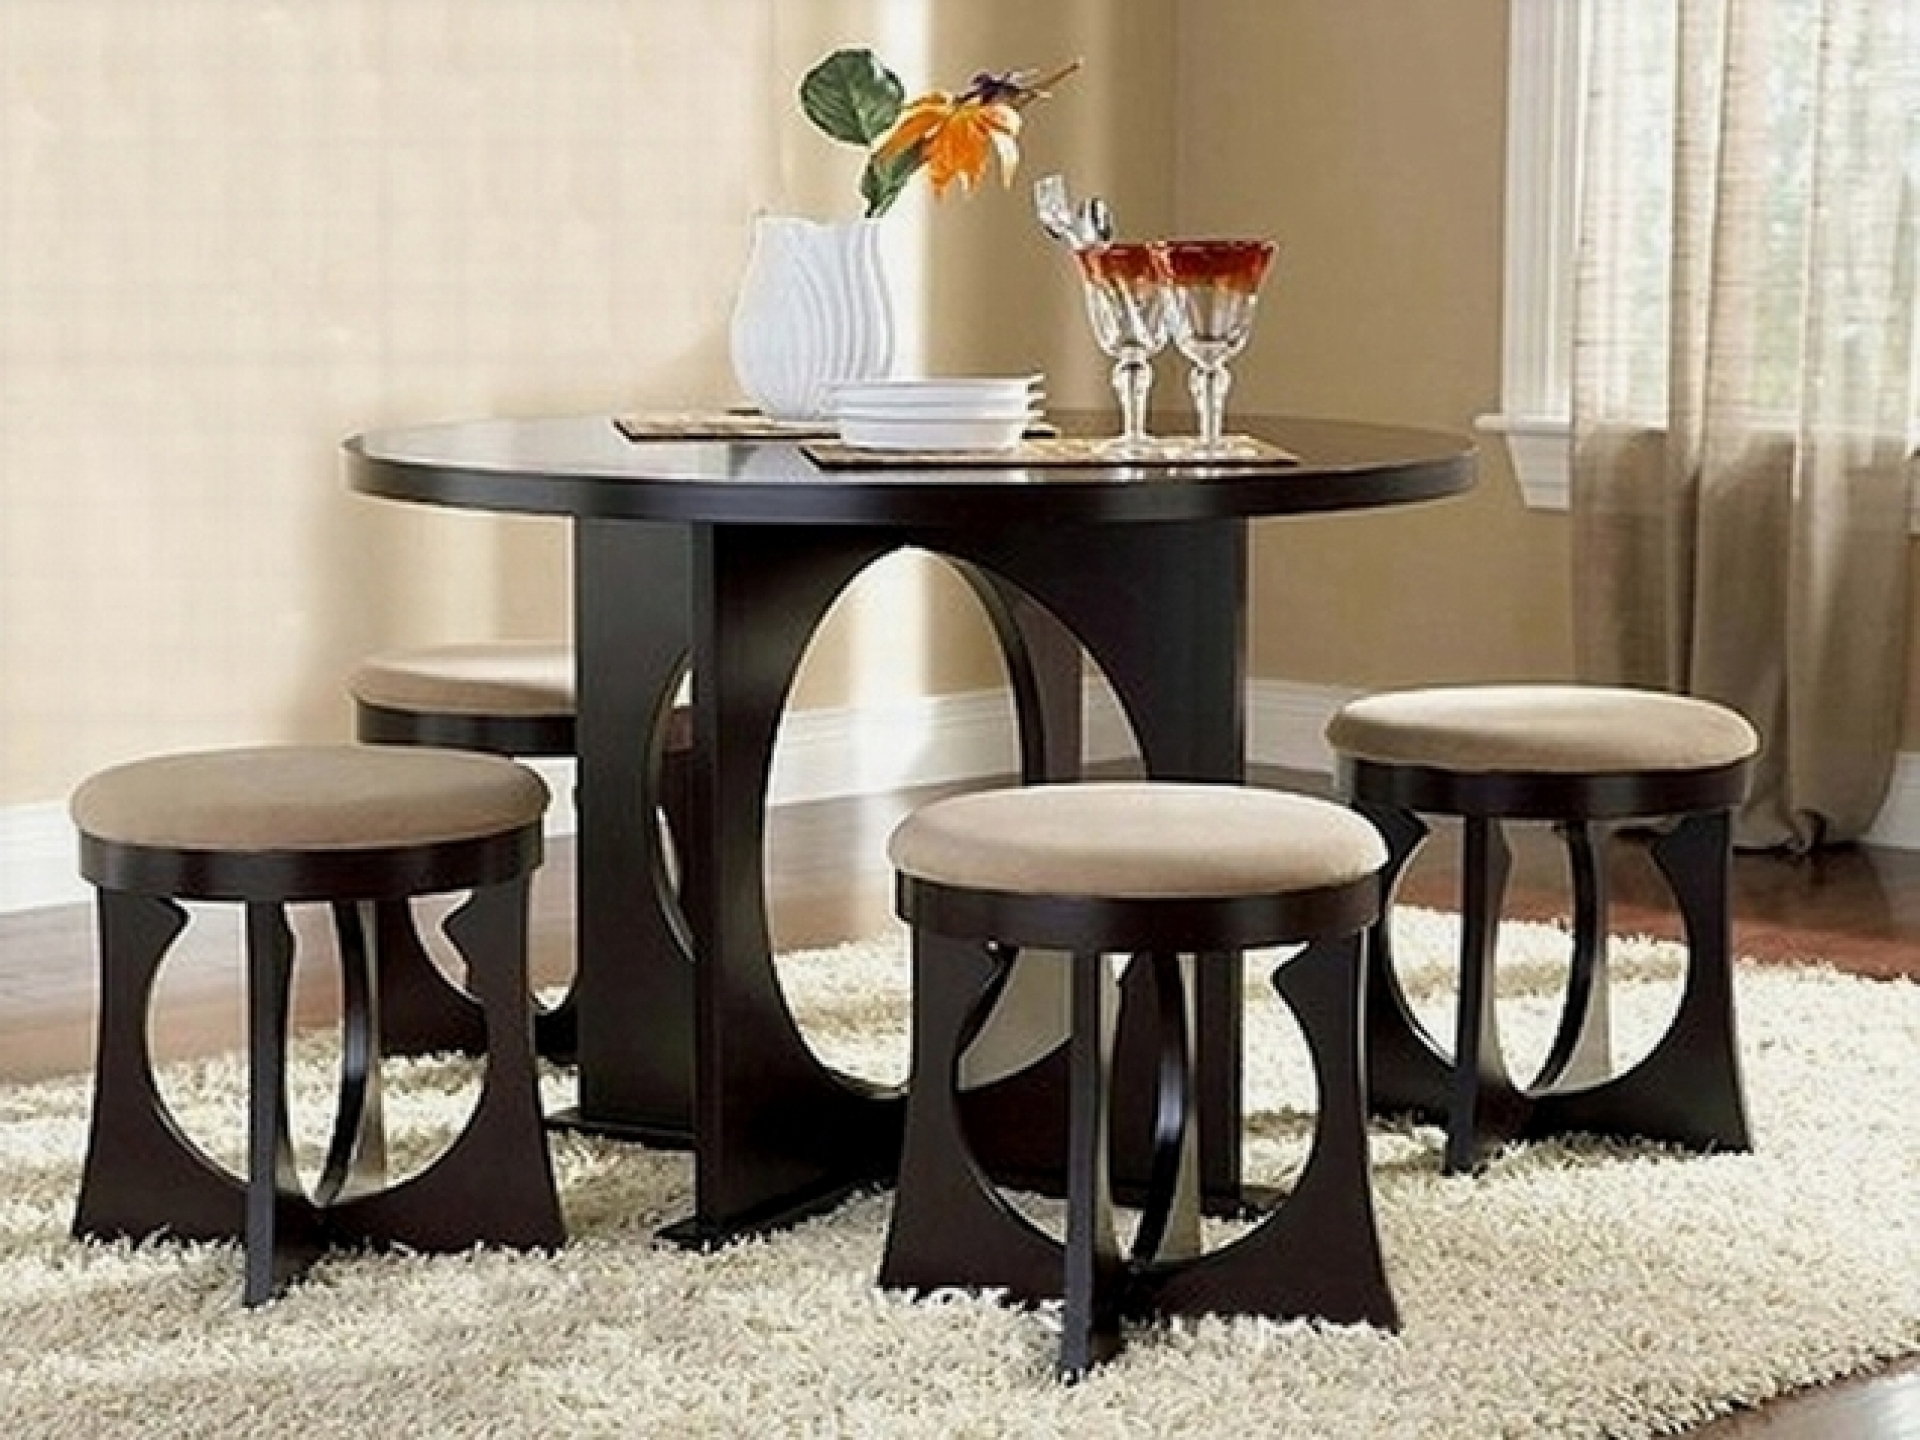 Surprising Round Dining Tables For